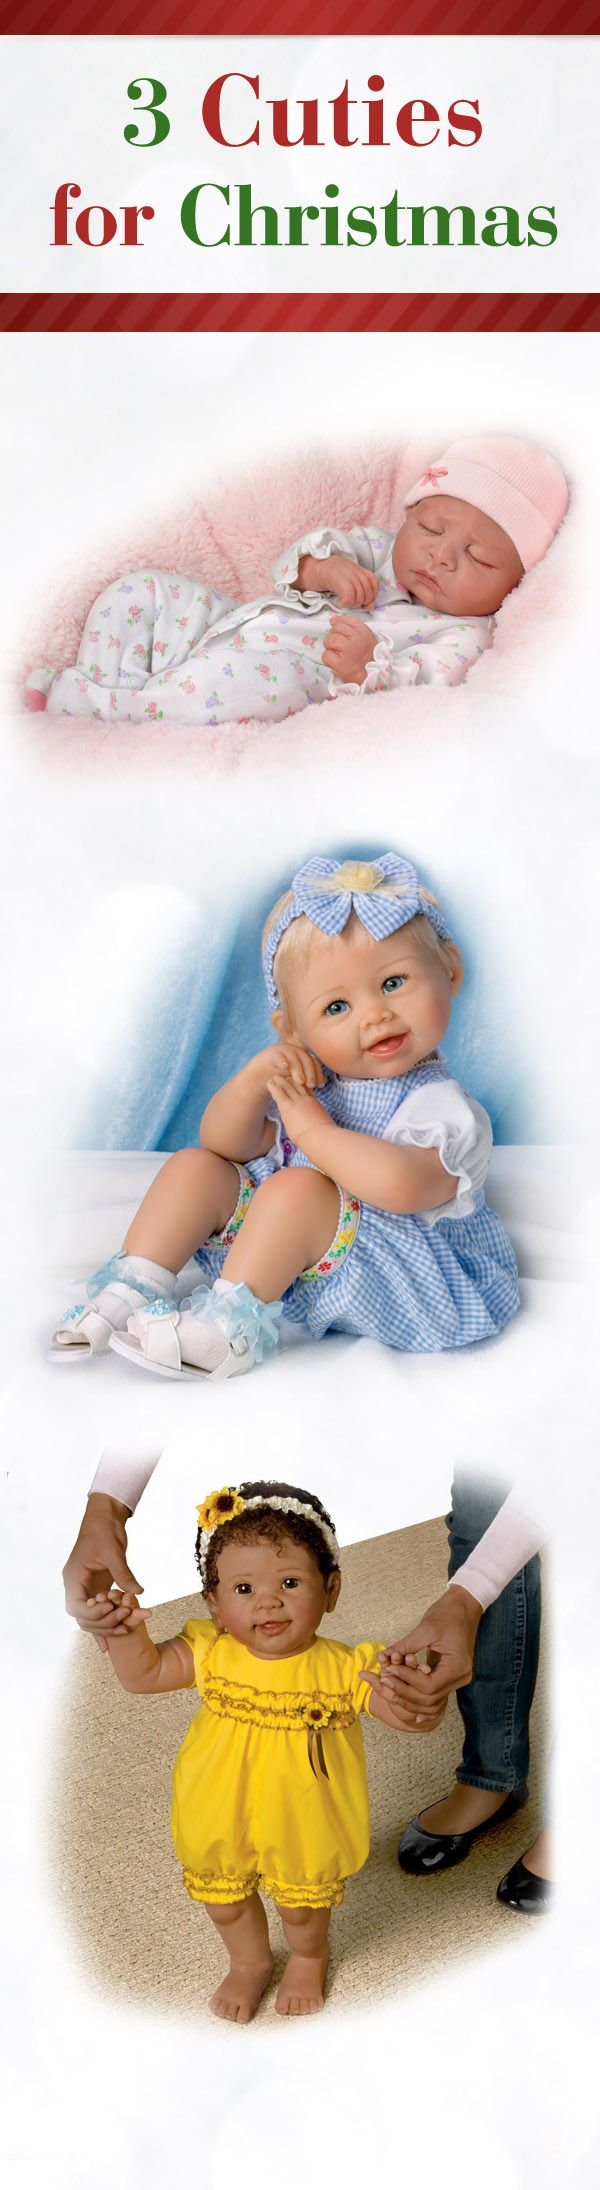 Which lifelike baby doll catches your eye?